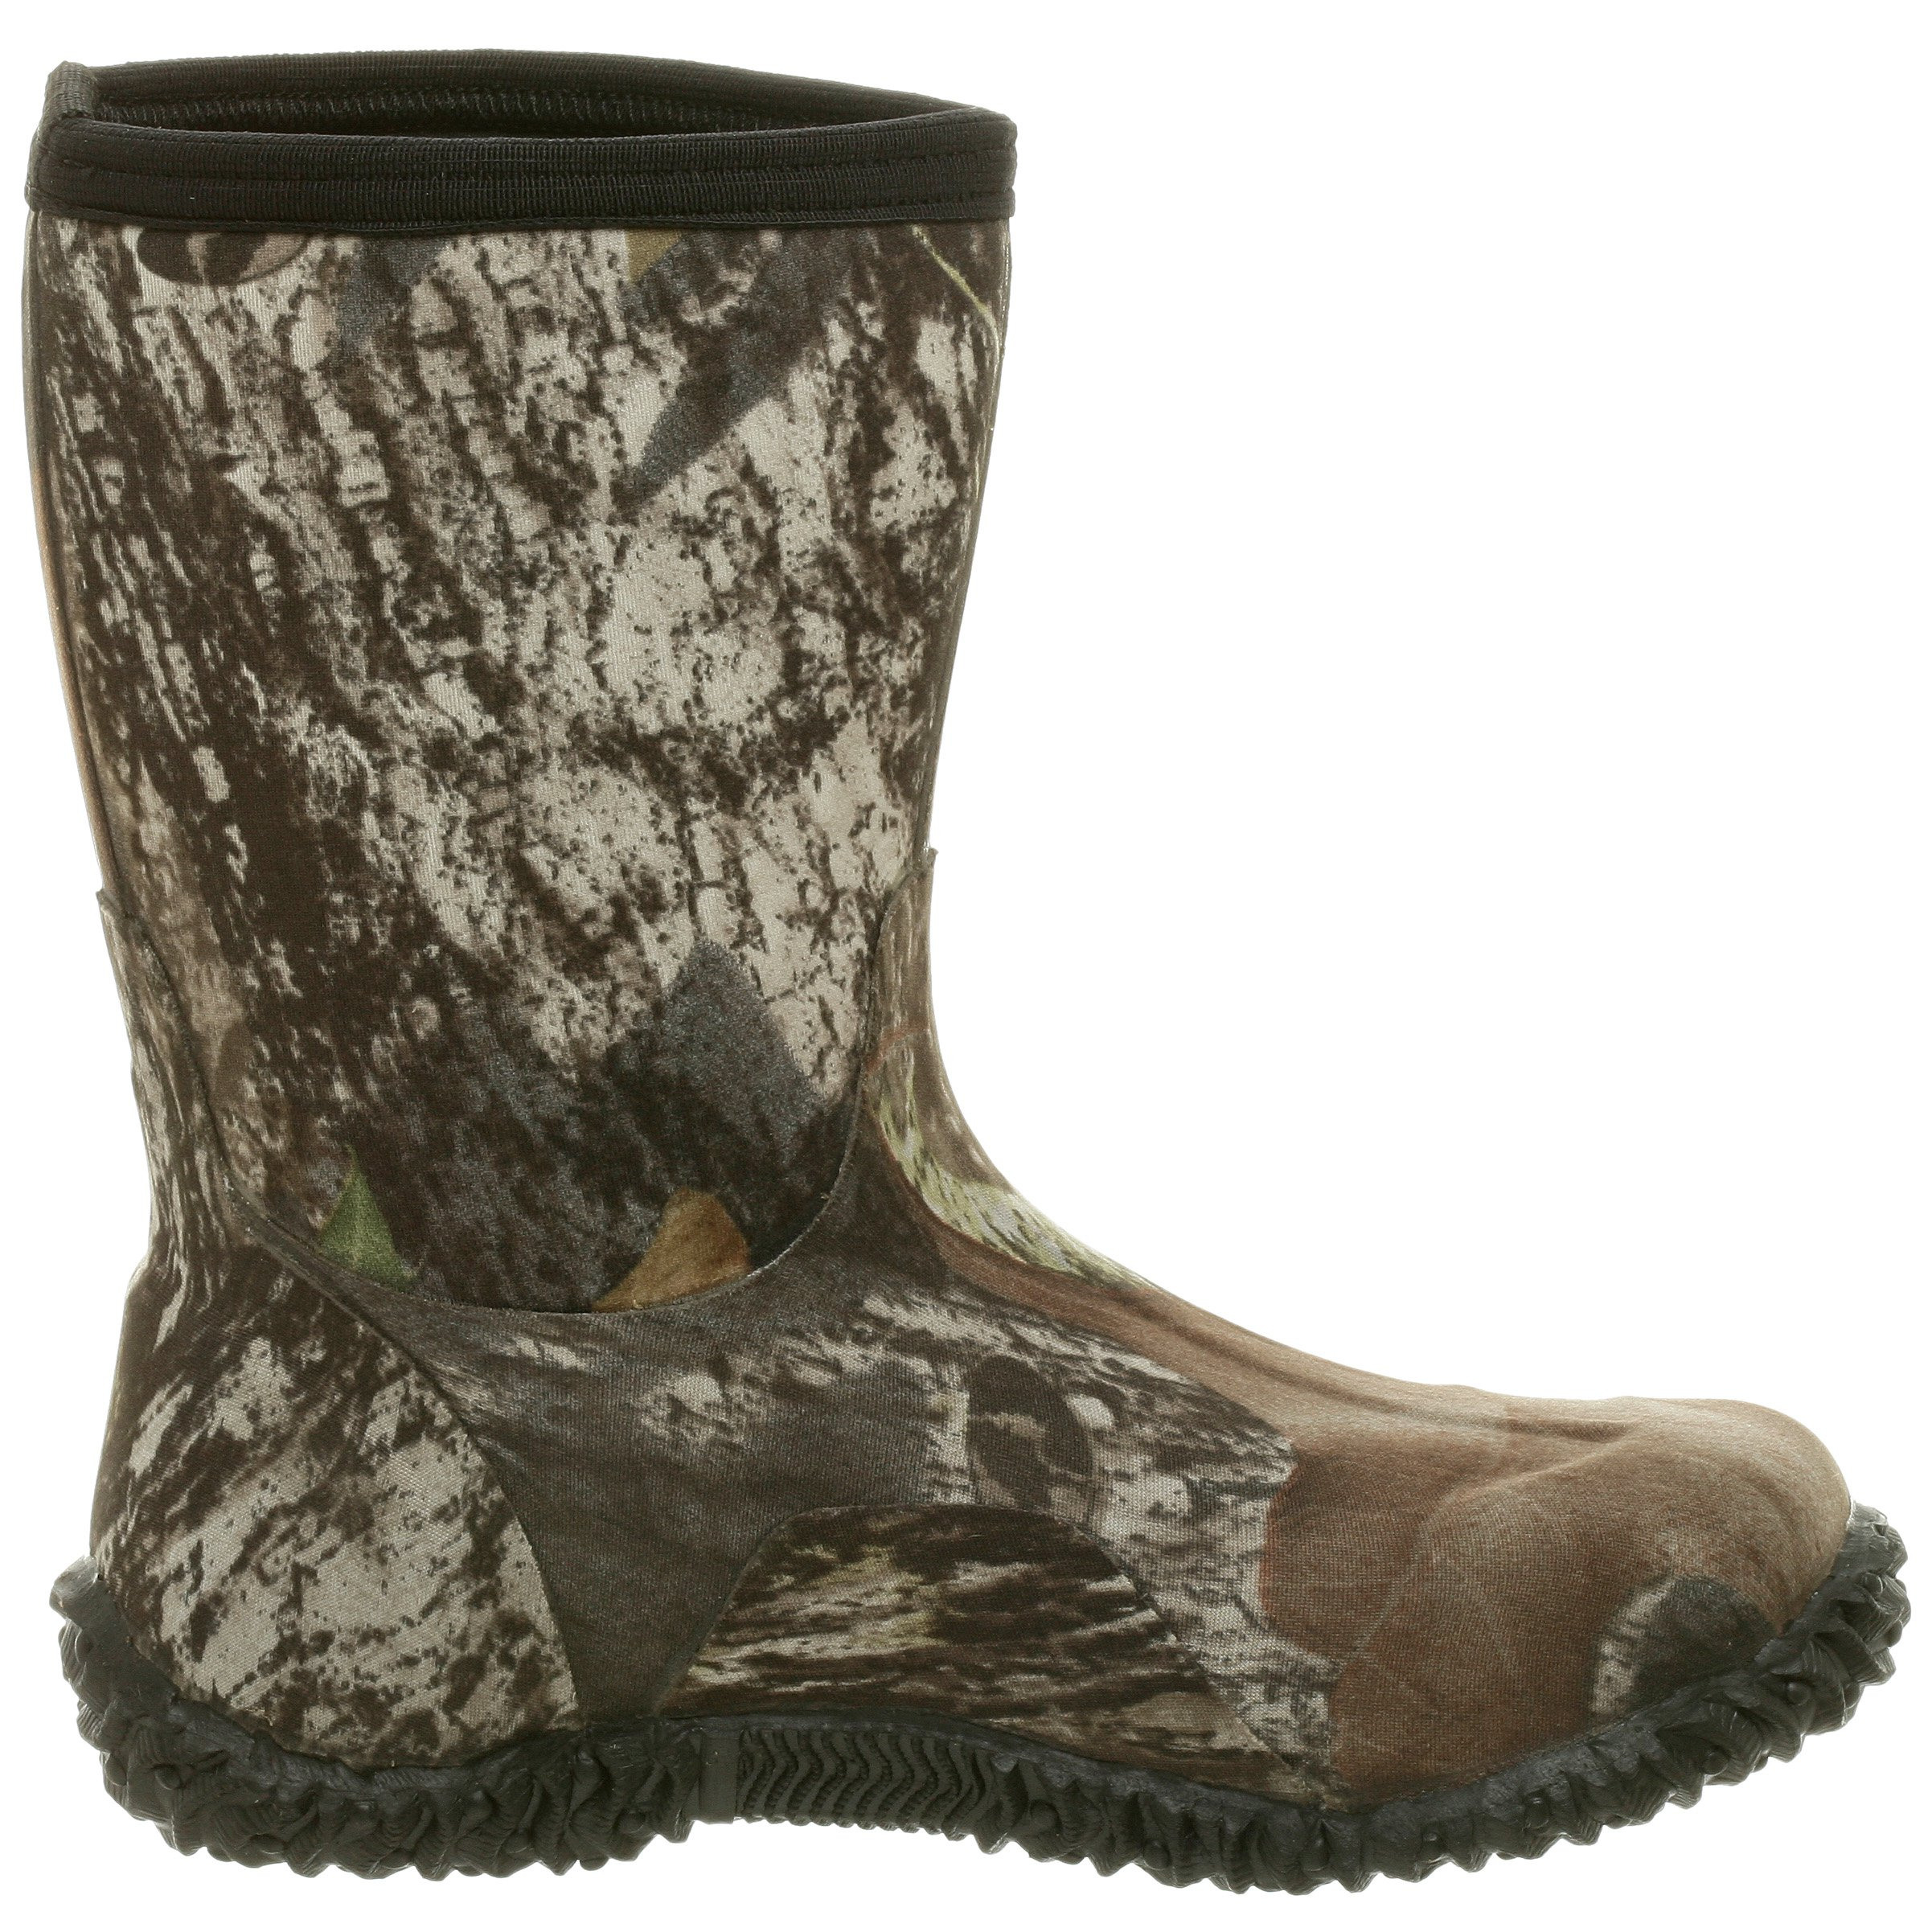 Bogs Classic Mid Waterproof Insulated Rain Boot (Toddler/Little Kid/Big Kid),  Mossy Oak, 9 M US Toddler by Bogs (Image #6)